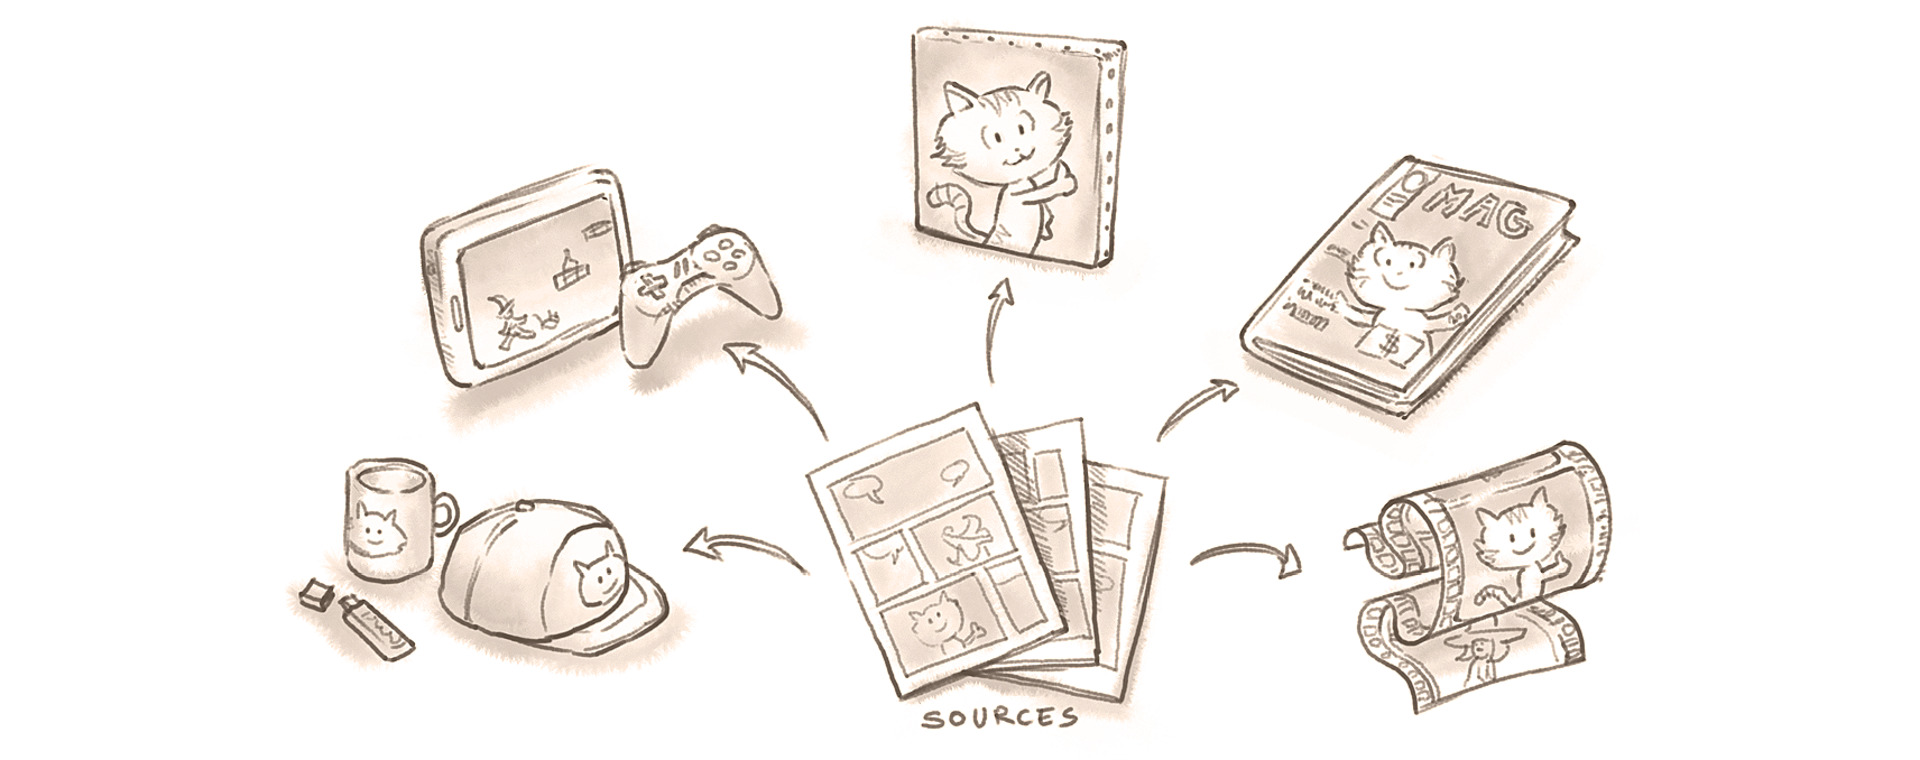 illustration representing open-source medias